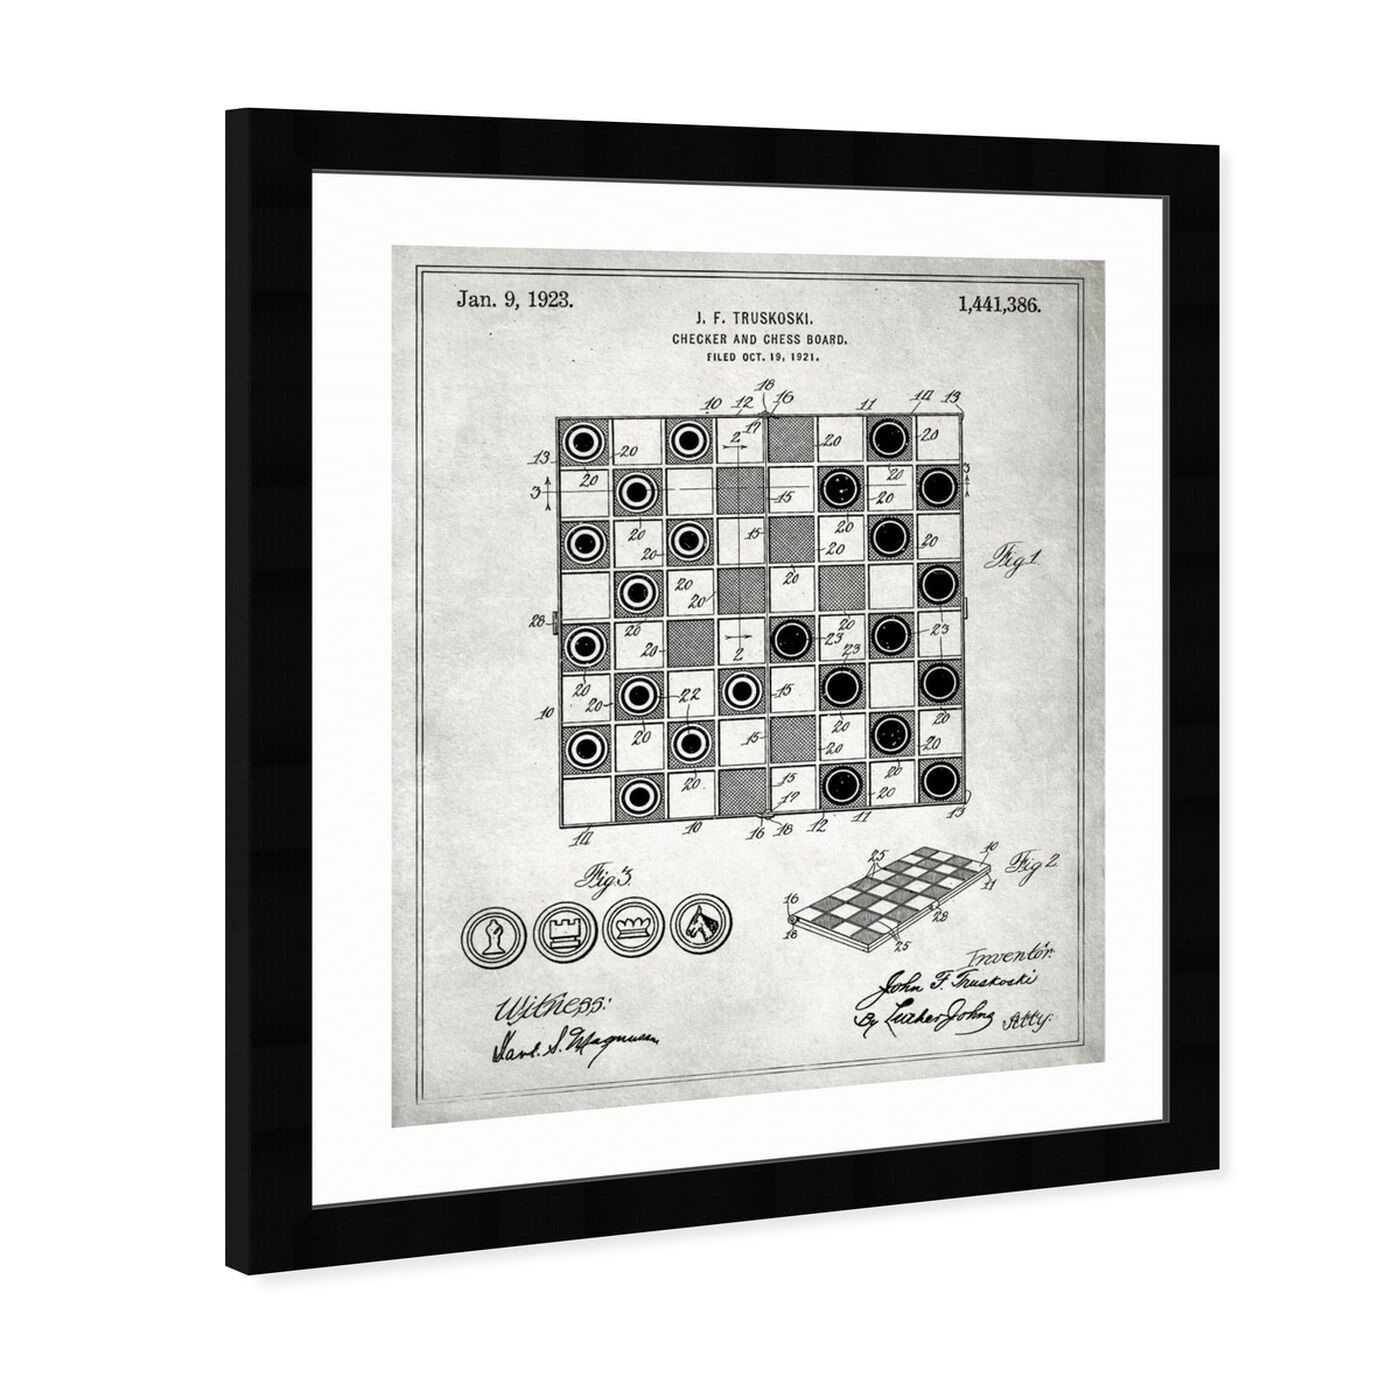 Angled view of Checker And Chess Board 1923 featuring entertainment and hobbies and board games art.